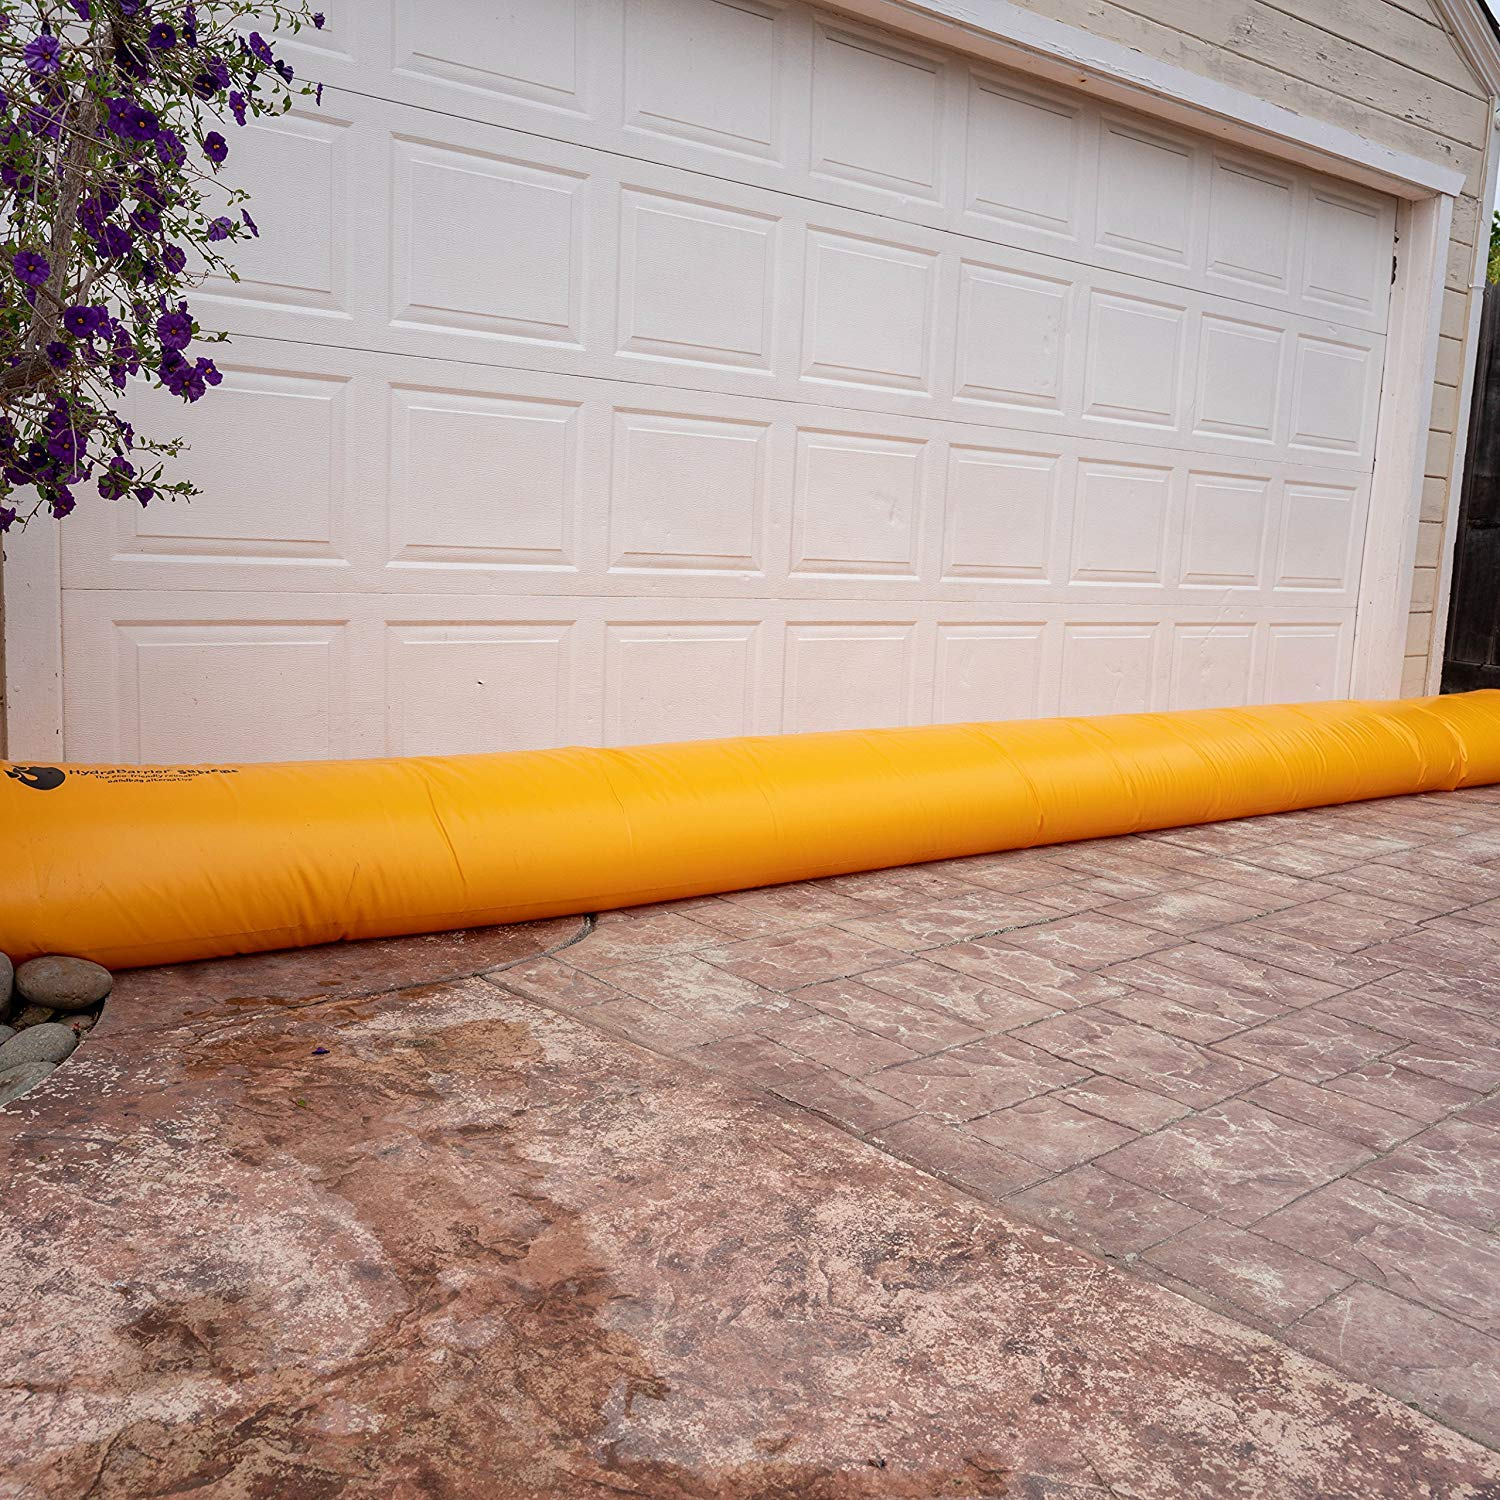 Best Sandbag Alternative Hydrabarrier Supreme 6 Foot Length 12 Inch Height Includes HydraFill Adapter Re-usable Single Unit - Water Diversion Tubes That are The Lightweight and Eco-Friendly